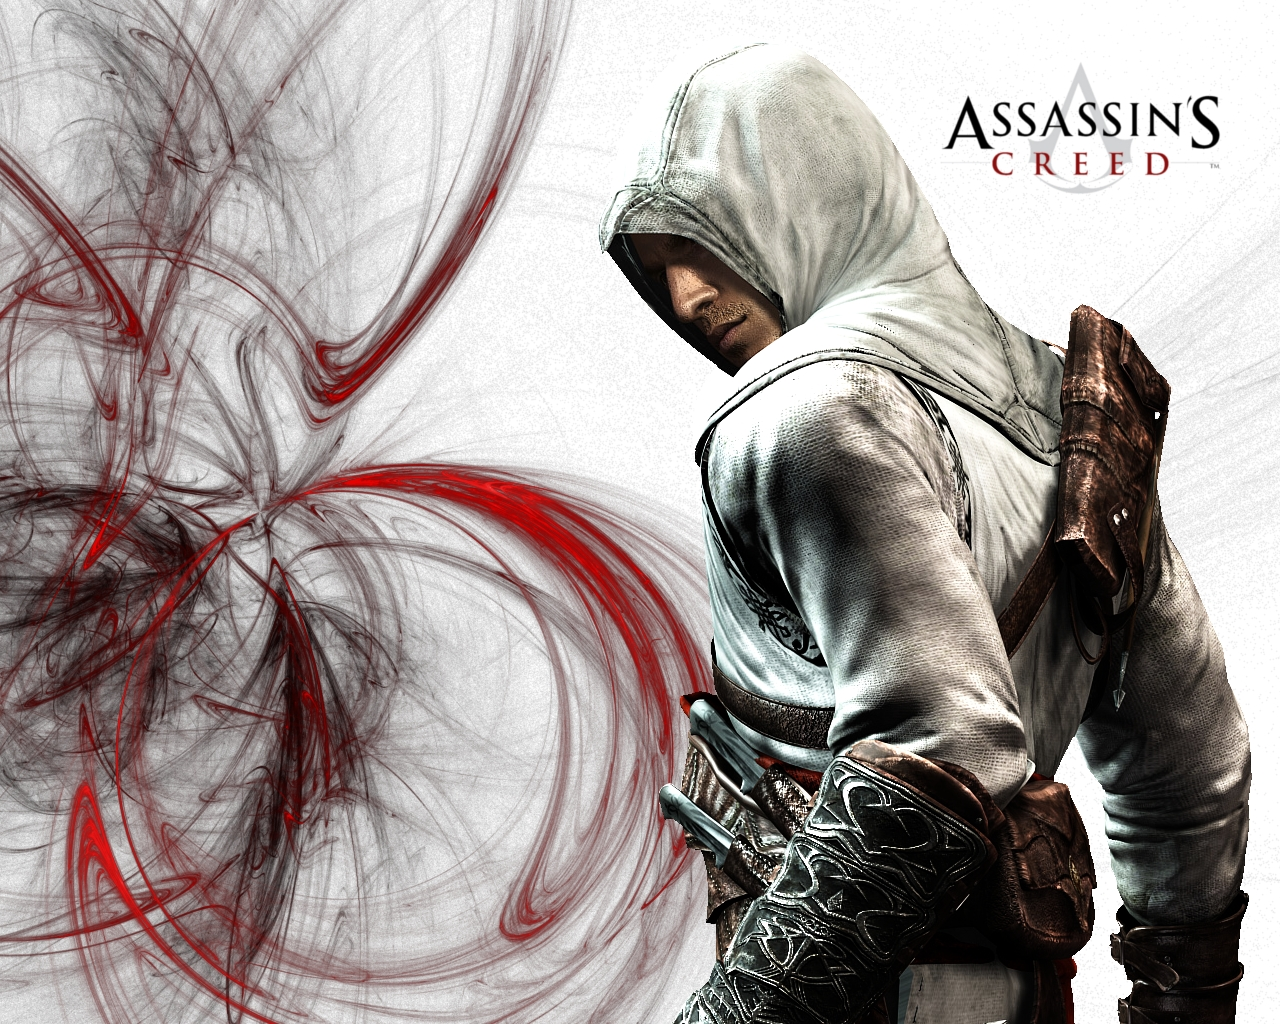 Free Download Assassins Creed Altair By Primesentinel 1280x1024 For Your Desktop Mobile Tablet Explore 73 Altair Wallpaper Assassin S Creed Altair Wallpaper